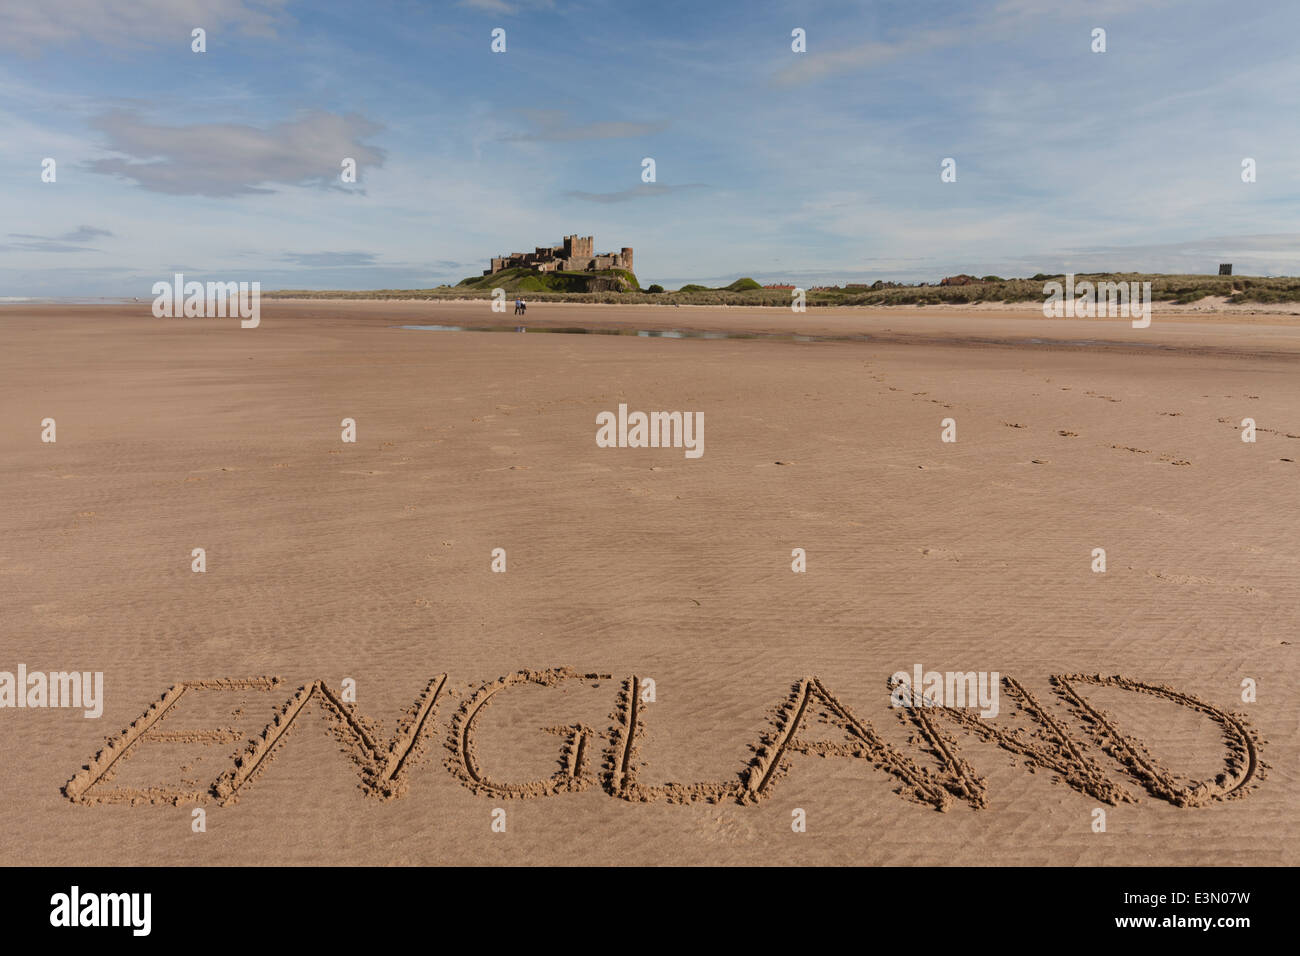 England written in sand on beach at Bamburgh, UK with Bamburgh Castle in background - Stock Image